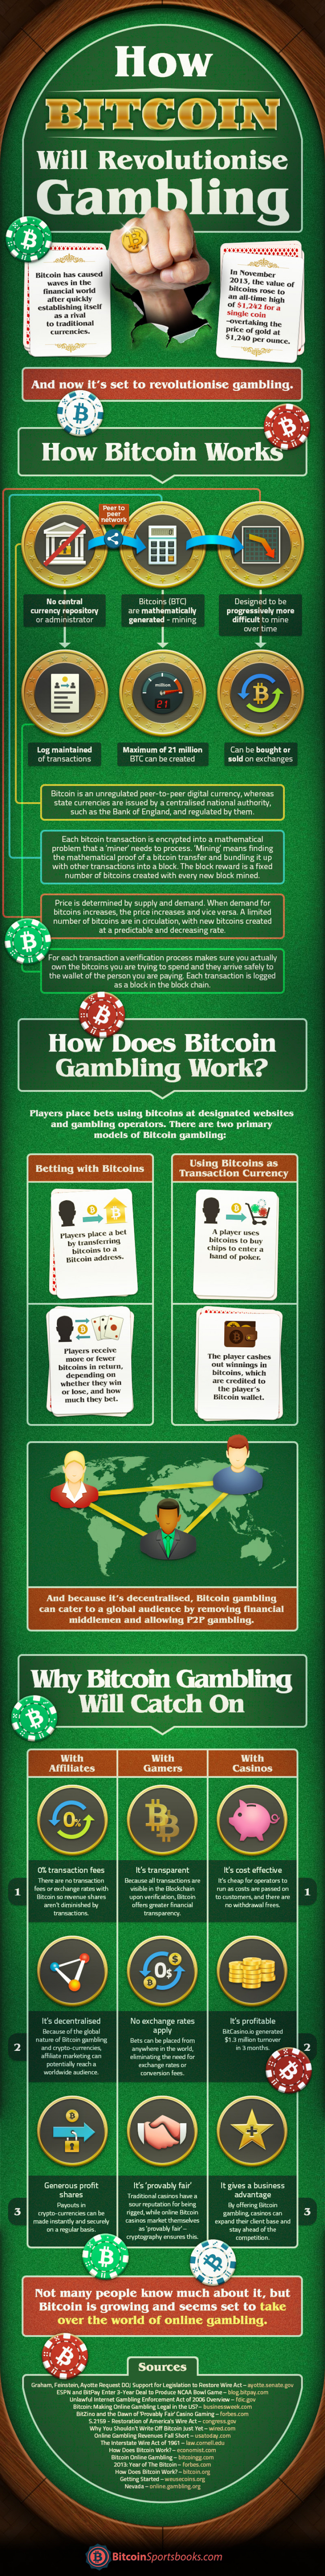 How Bitcoin will revolutionize gambling - infographic